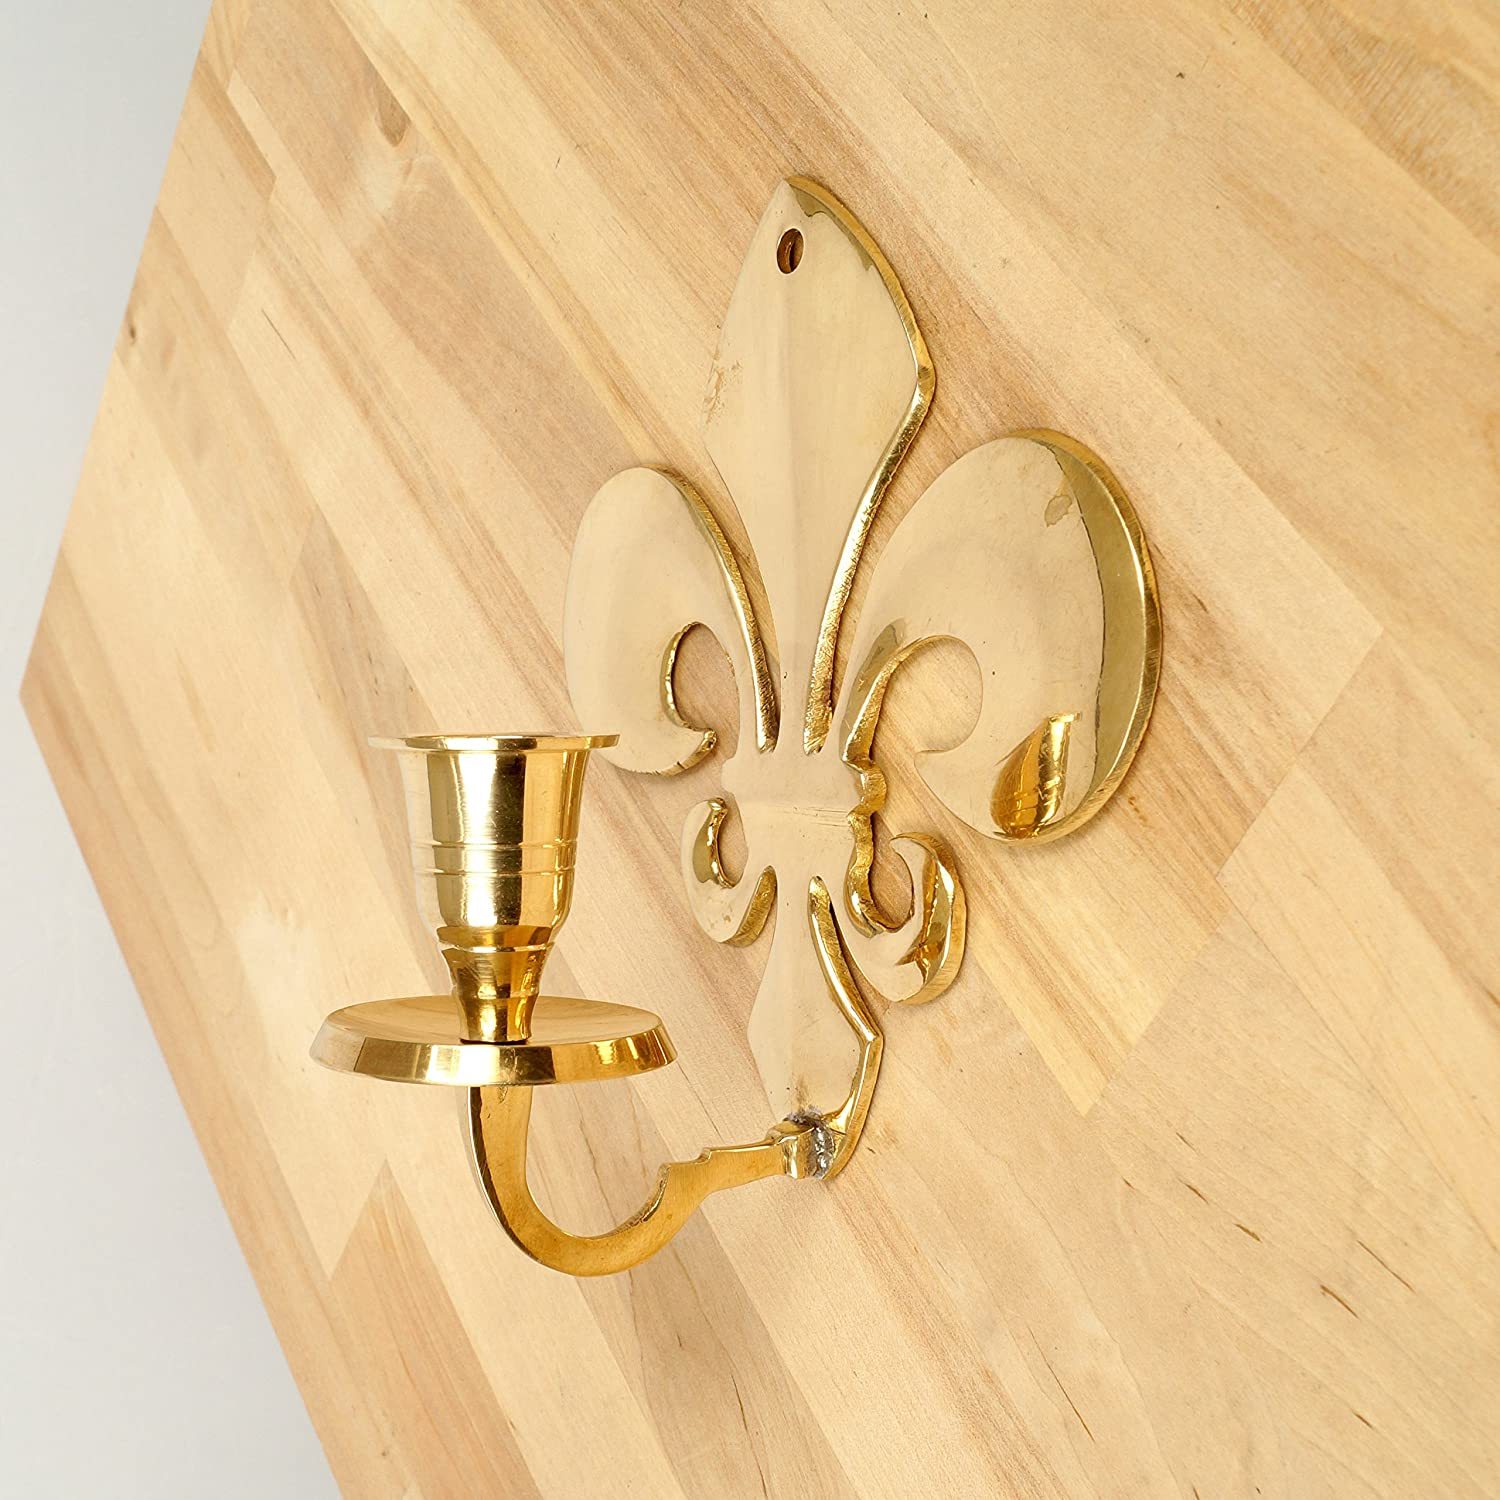 Amazon.com: Wall Candle Holder with a Fleur-de-lis design || solid ...